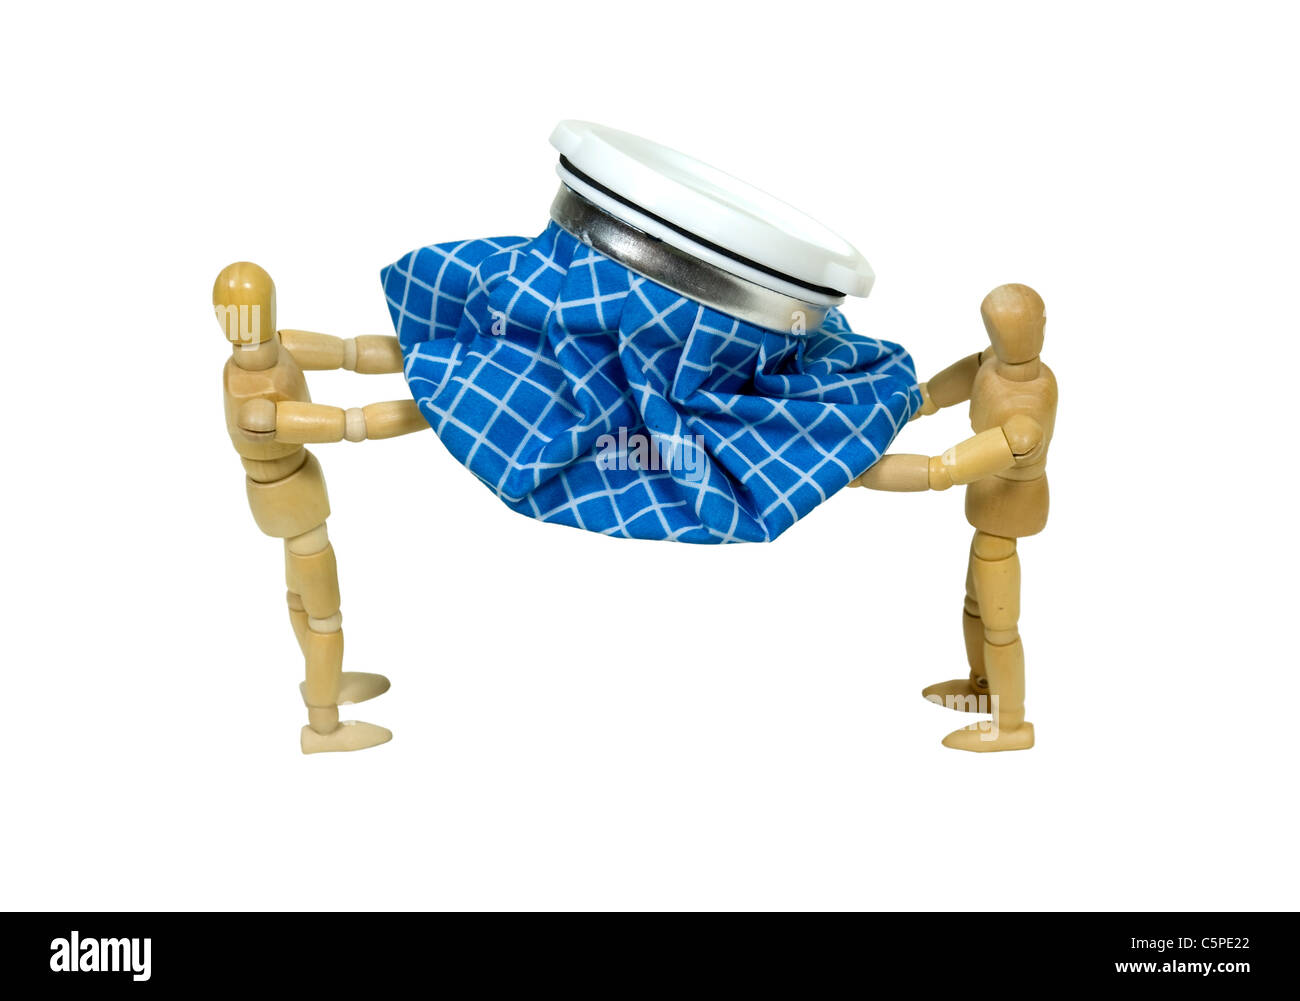 Ice pack to the rescue shown by two models carrying an old fashioned blue checkered ice pack for first aid uses - Stock Image